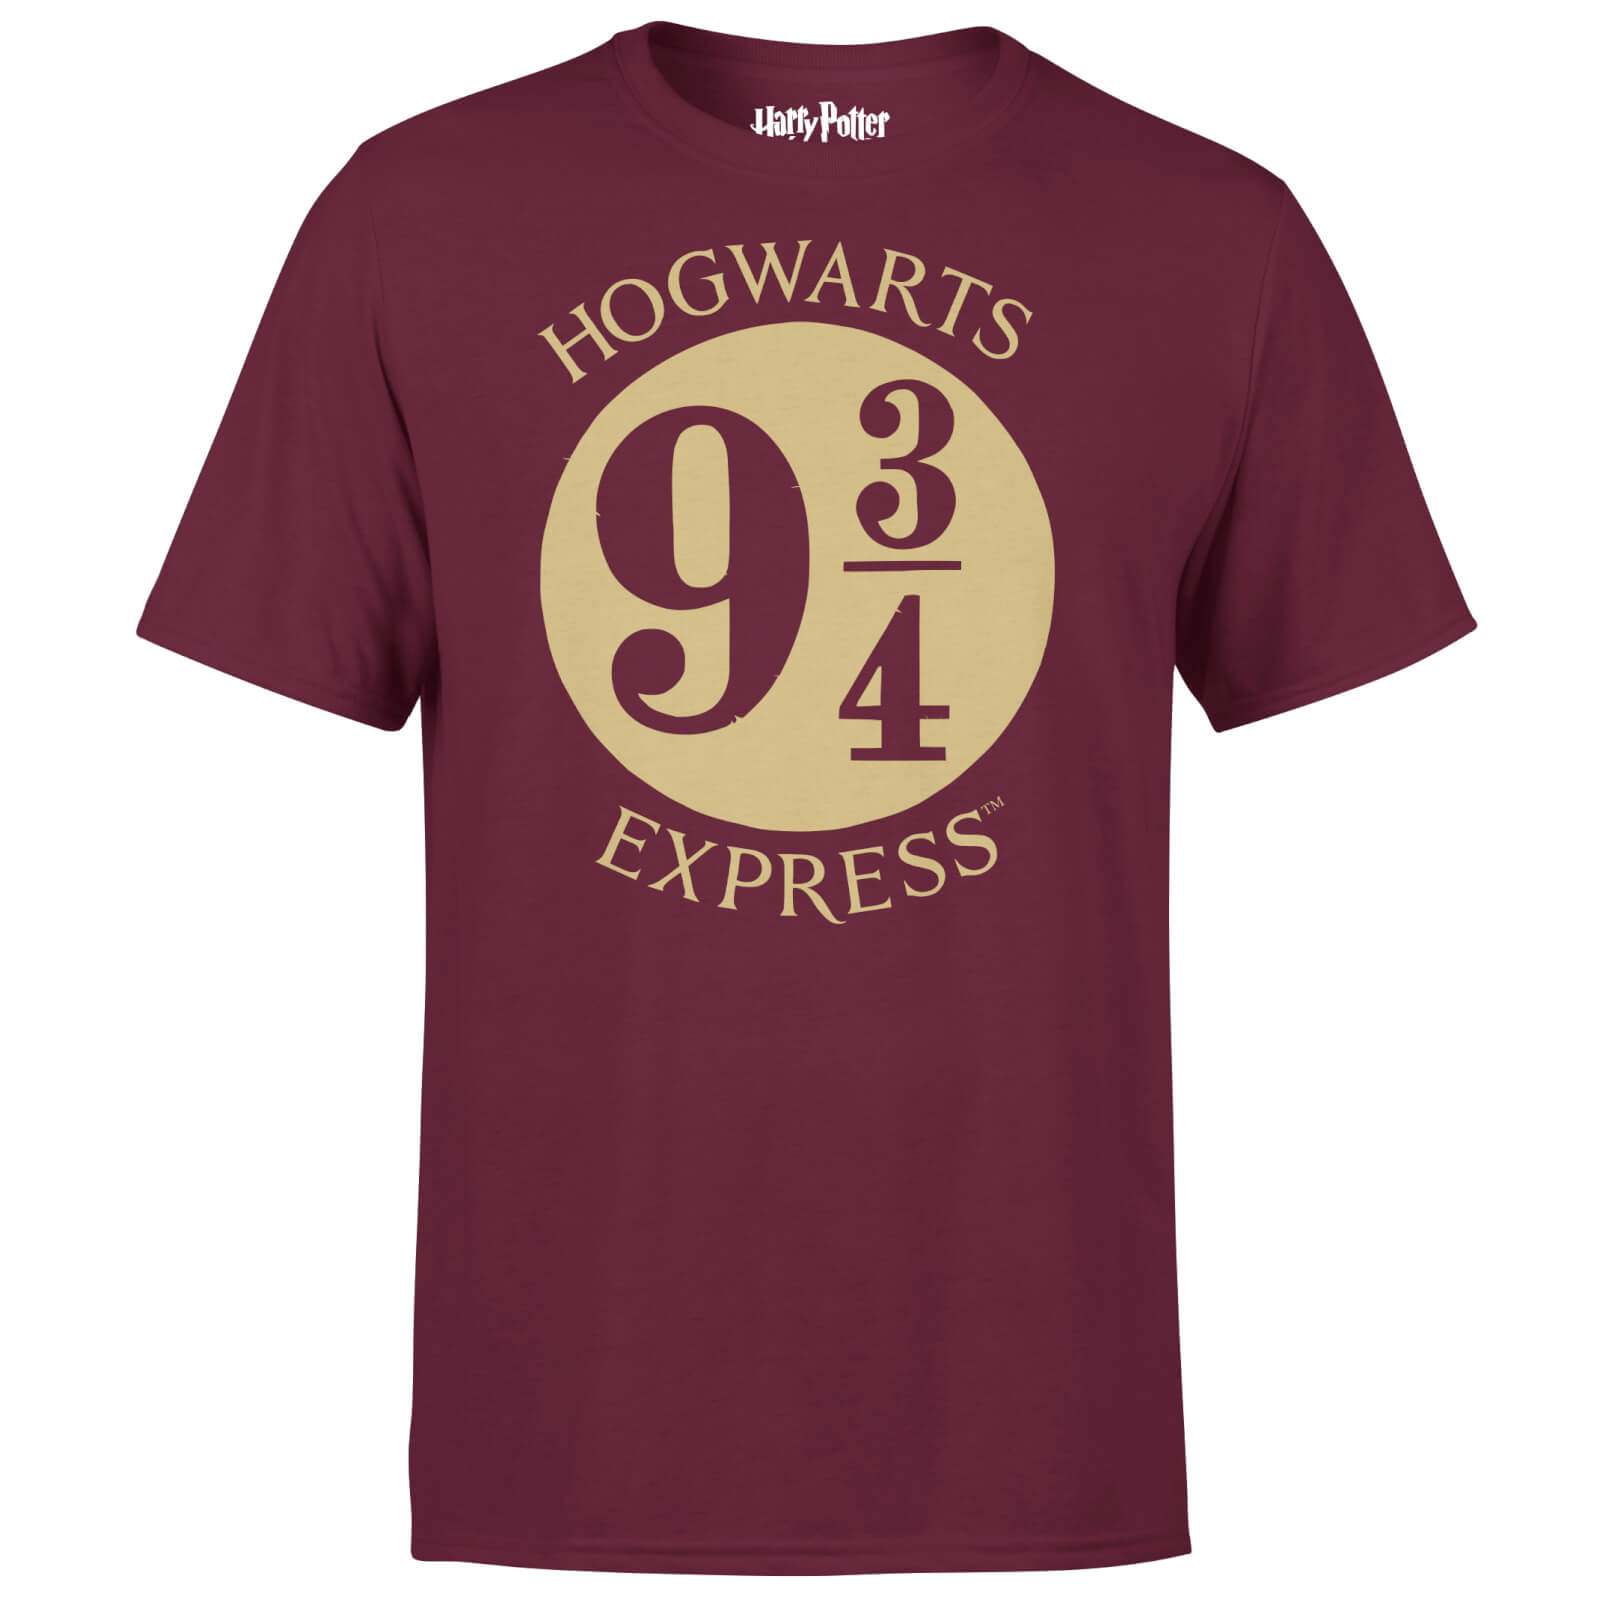 Harry Potter Platform Burgundy T-Shirt